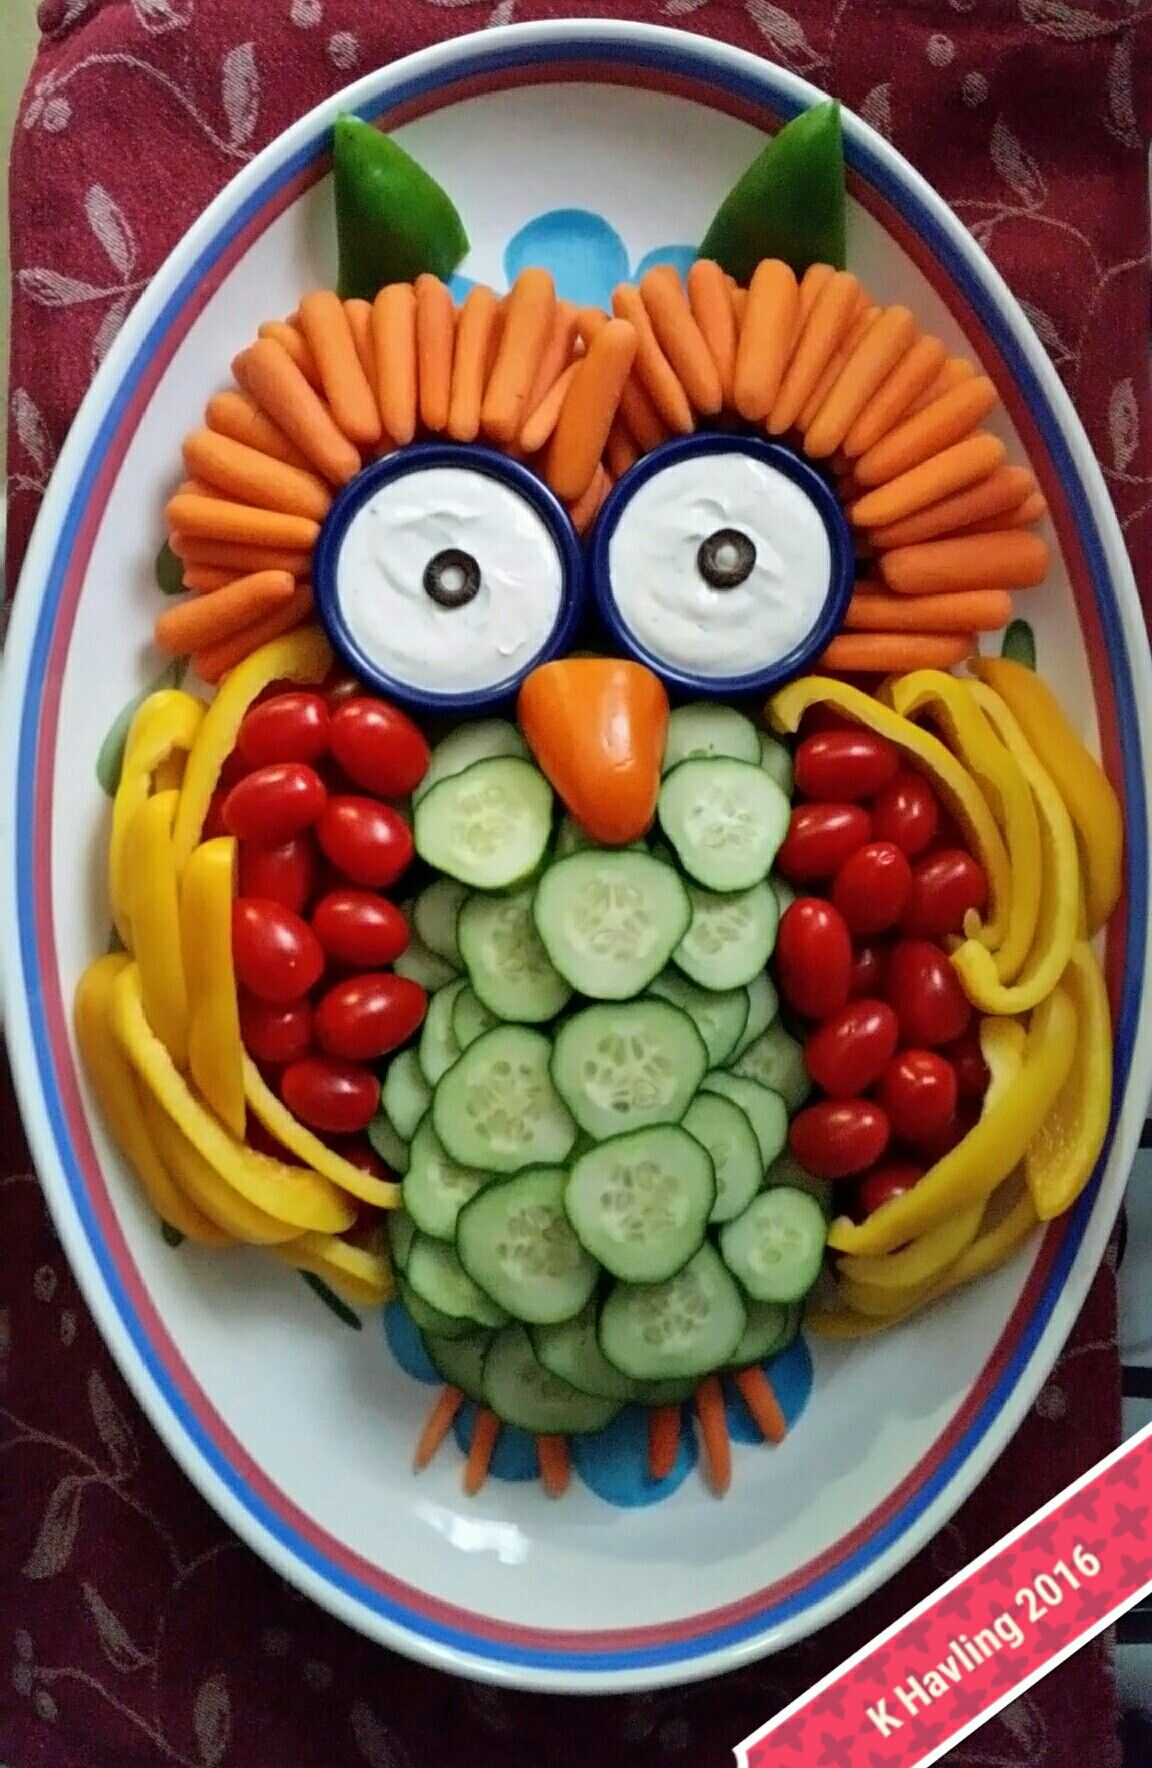 Kalte Gerichte Kinder My Veggie Owl Made For My Mom Copied From Blog